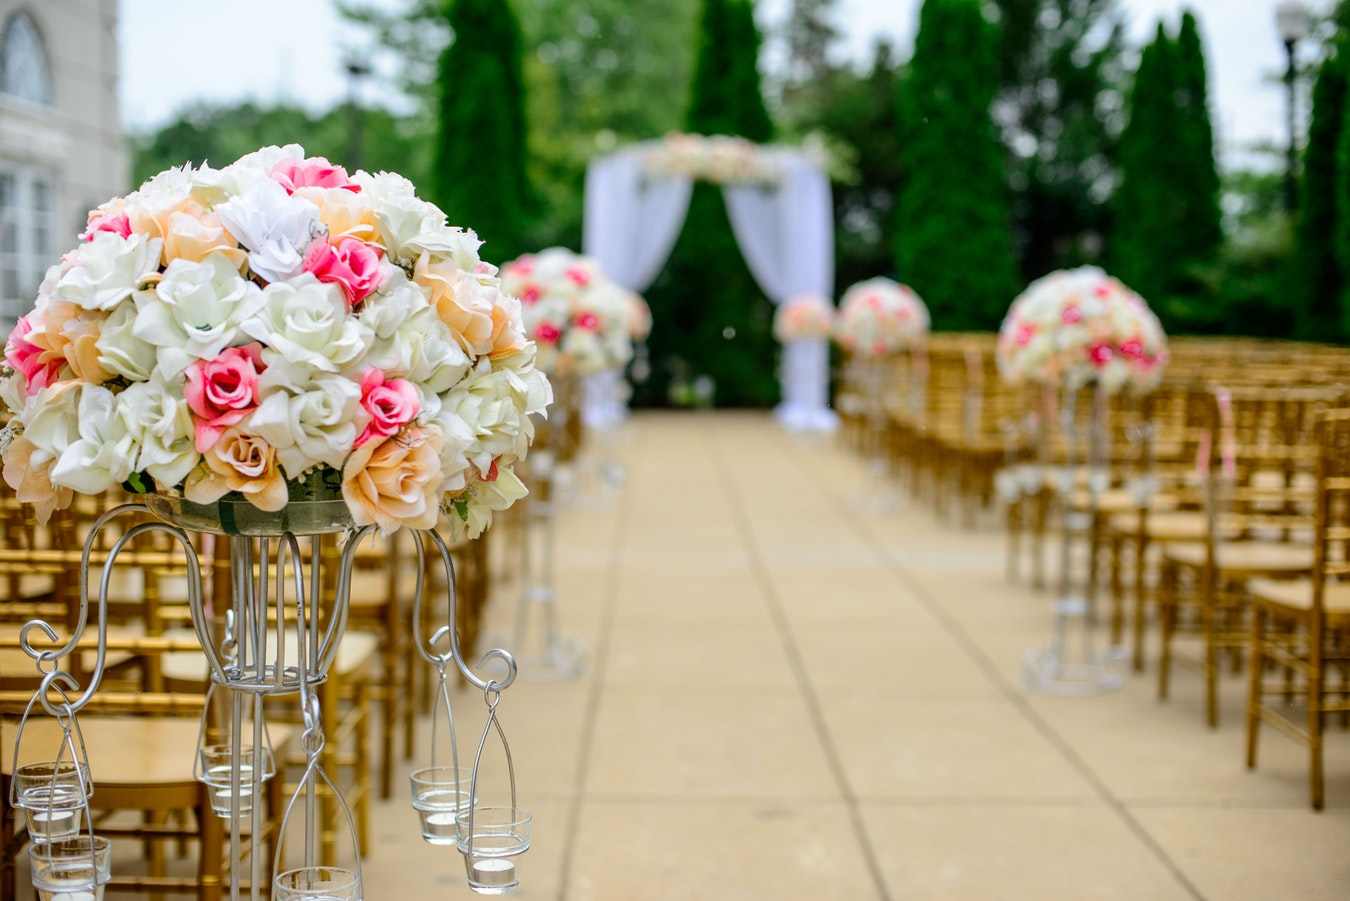 Choosing the Perfect Wedding Venue